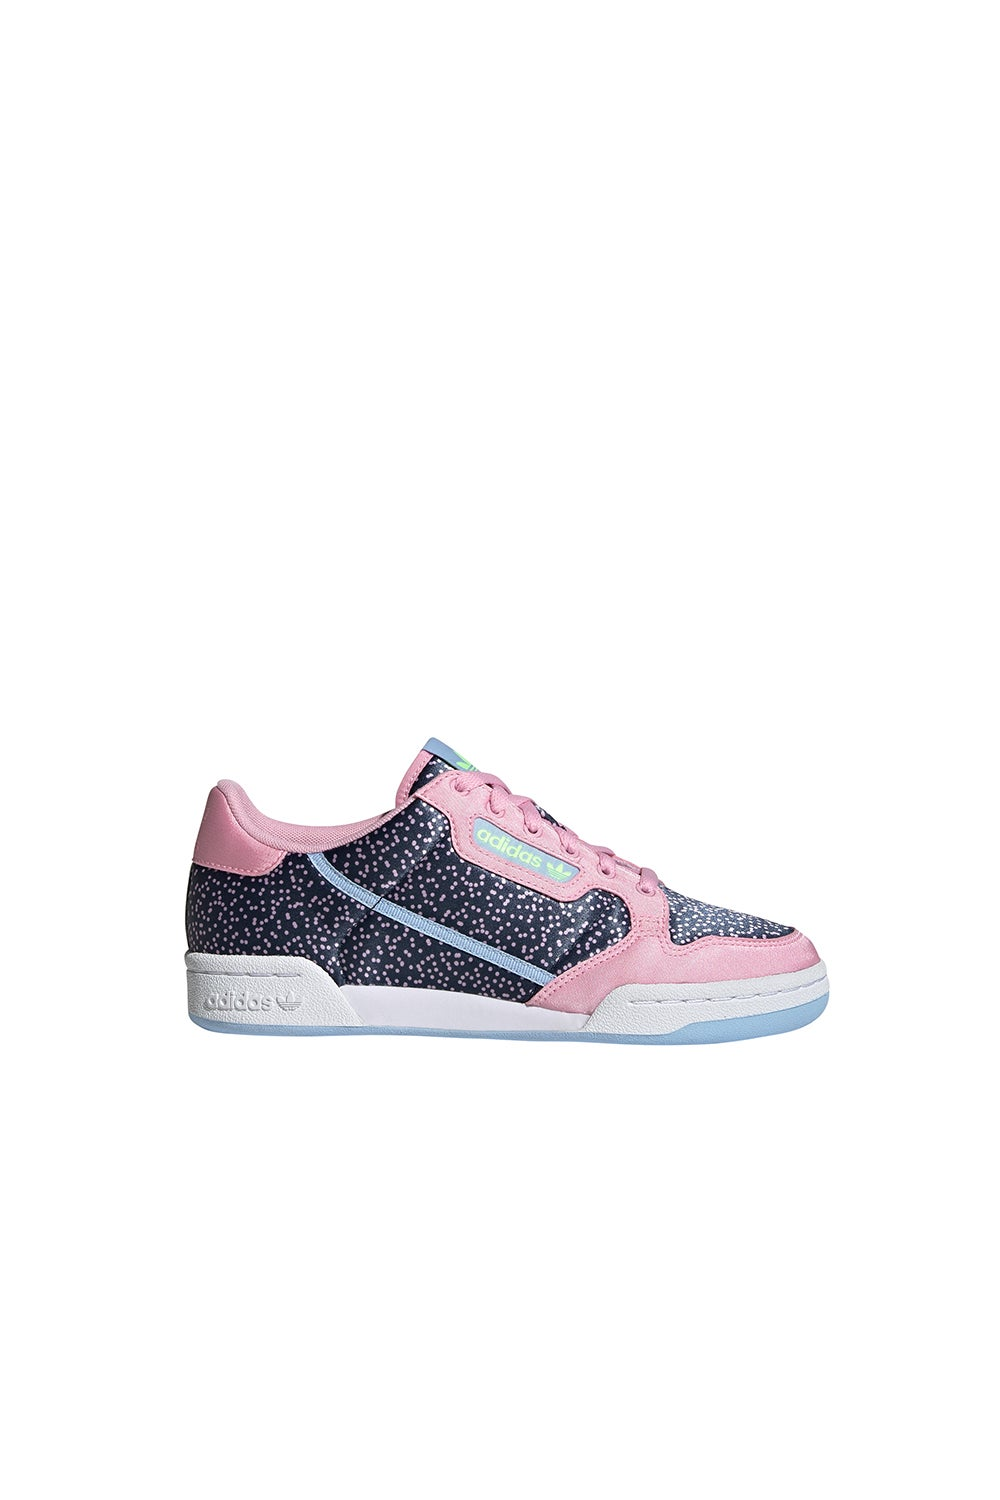 adidas Continental 80 True Pink/Collegiate Navy/Glow Blue